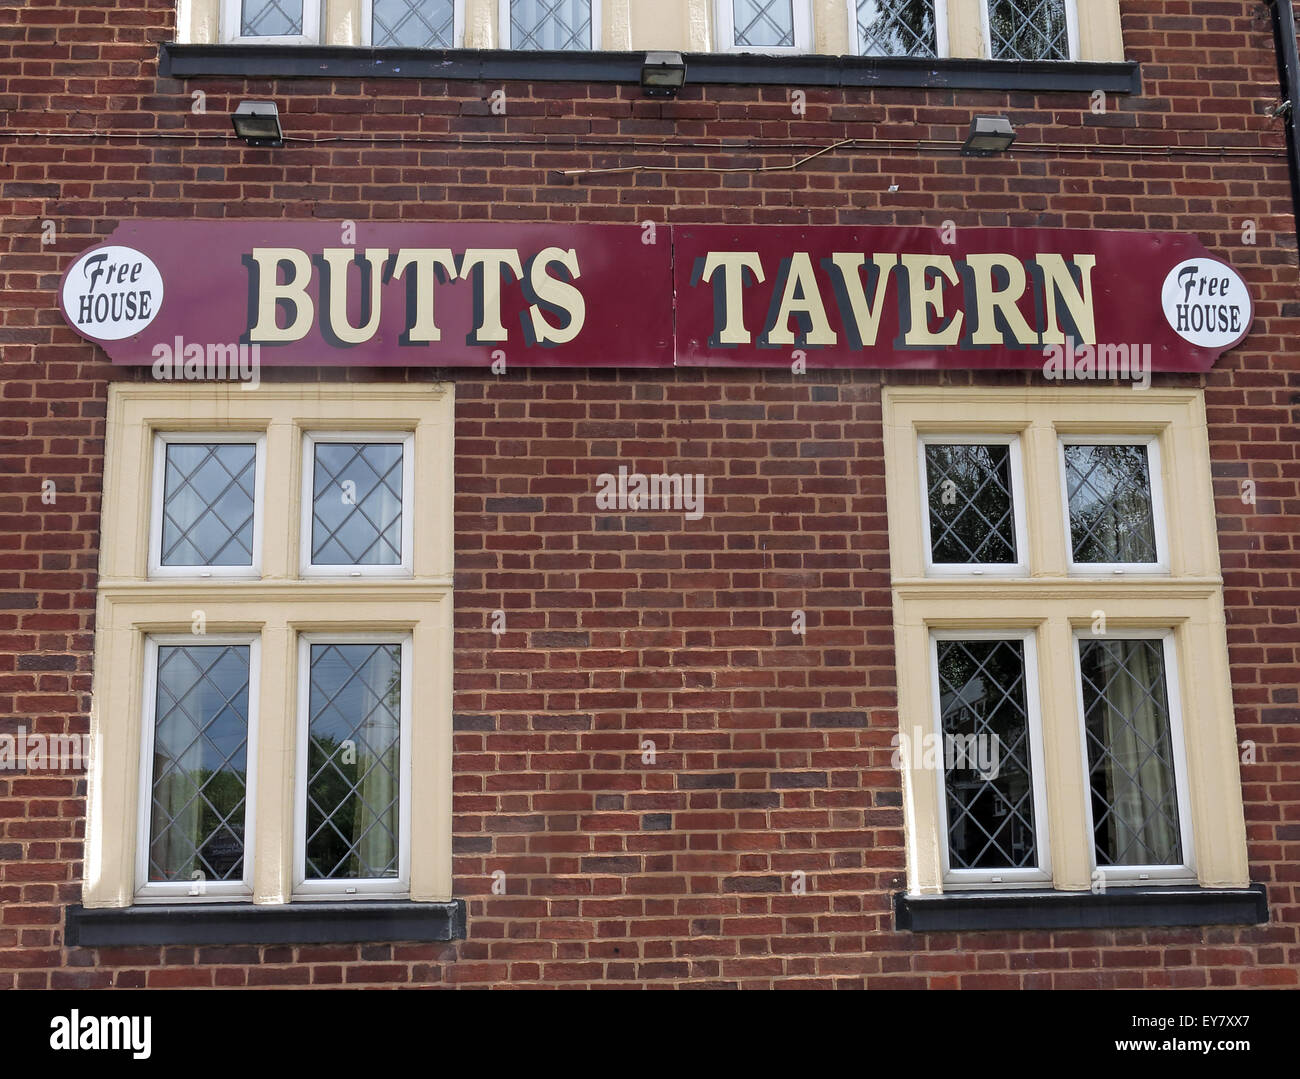 Butts Street,Free House,historic,pub,bar,gay,butt,butts,bathhouse,bath house,SF,Canal St,Queer,Homosexual,LGBT,England,UK,Midland,Butts,Tavern,Public House,GoTonySmith,Black,Country,Buy Pictures of,Buy Images Of,Black Country,Walsall Black Country